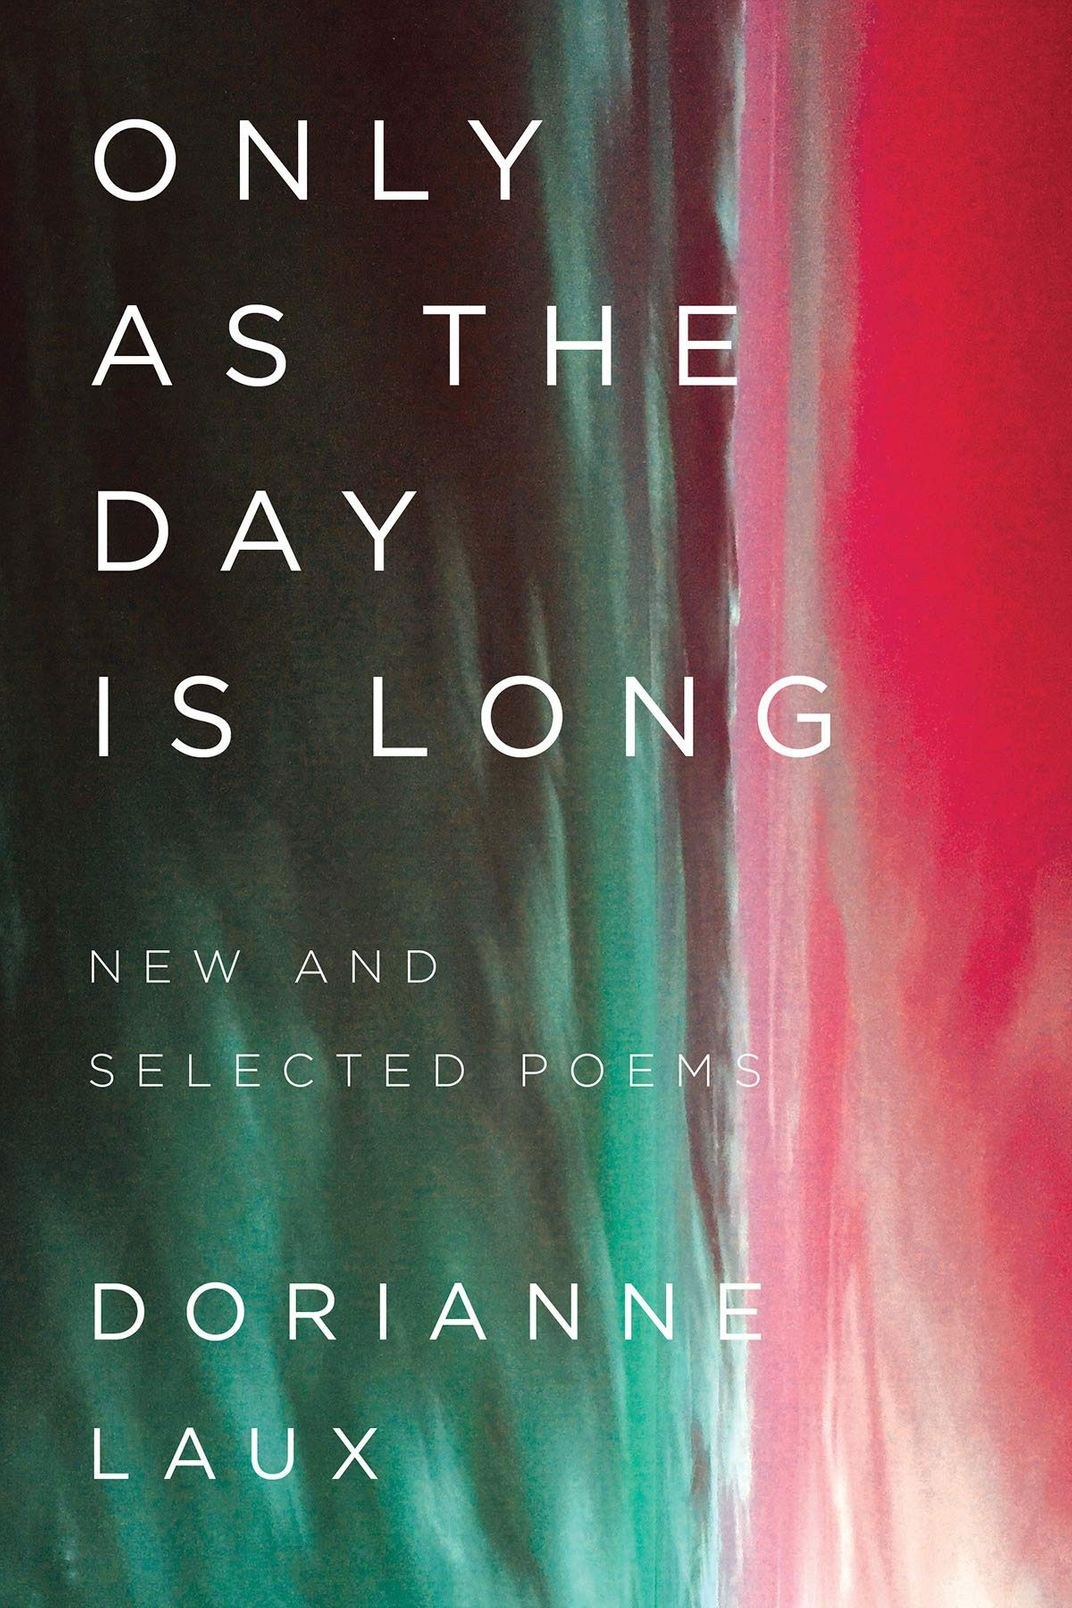 Only as the Day Is Long: New and Selected Poems, by Dorianne Laux (W.W. Norton, Jan. 15)